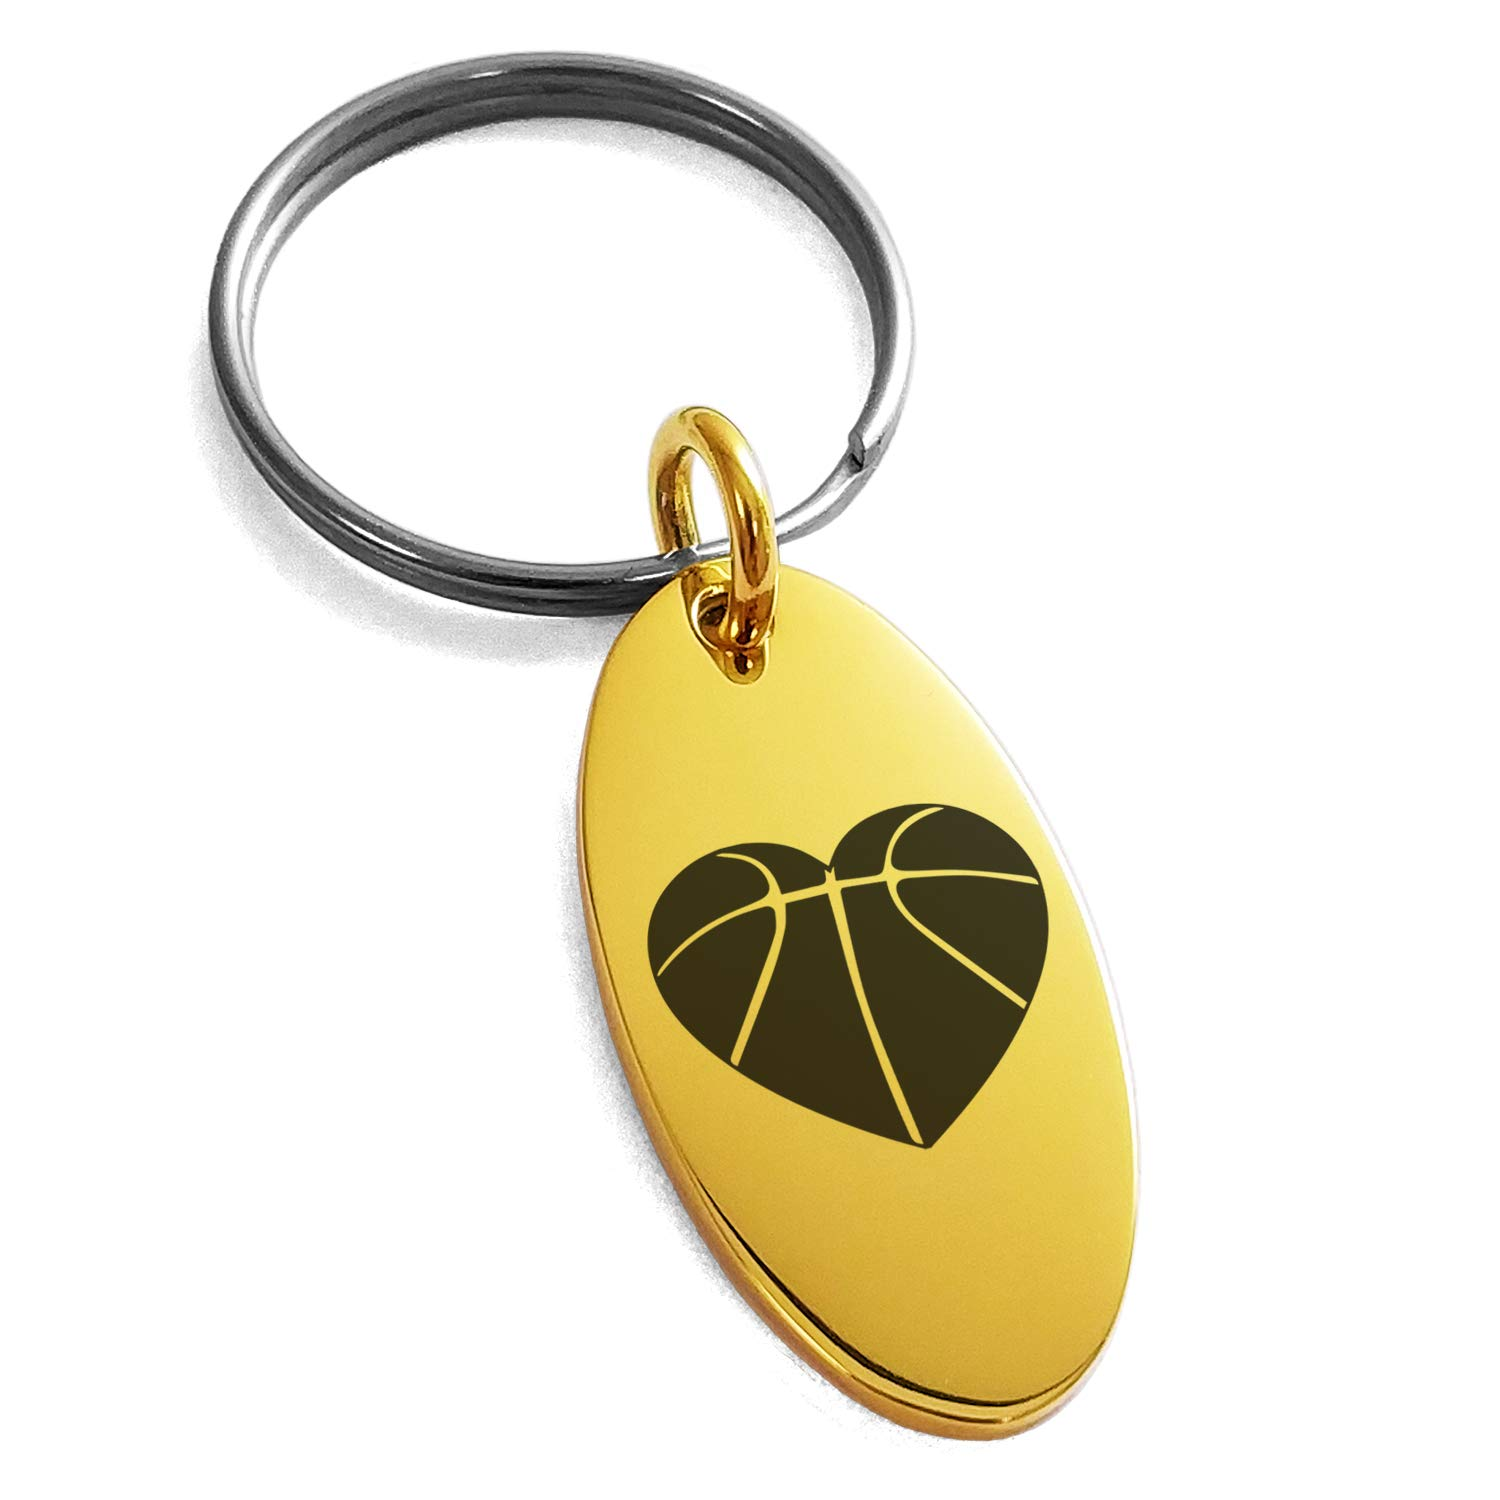 Tioneer Gold Plated Stainless Steel Love Basketball Heart Engraved Small Oval Charm Keychain Keyring